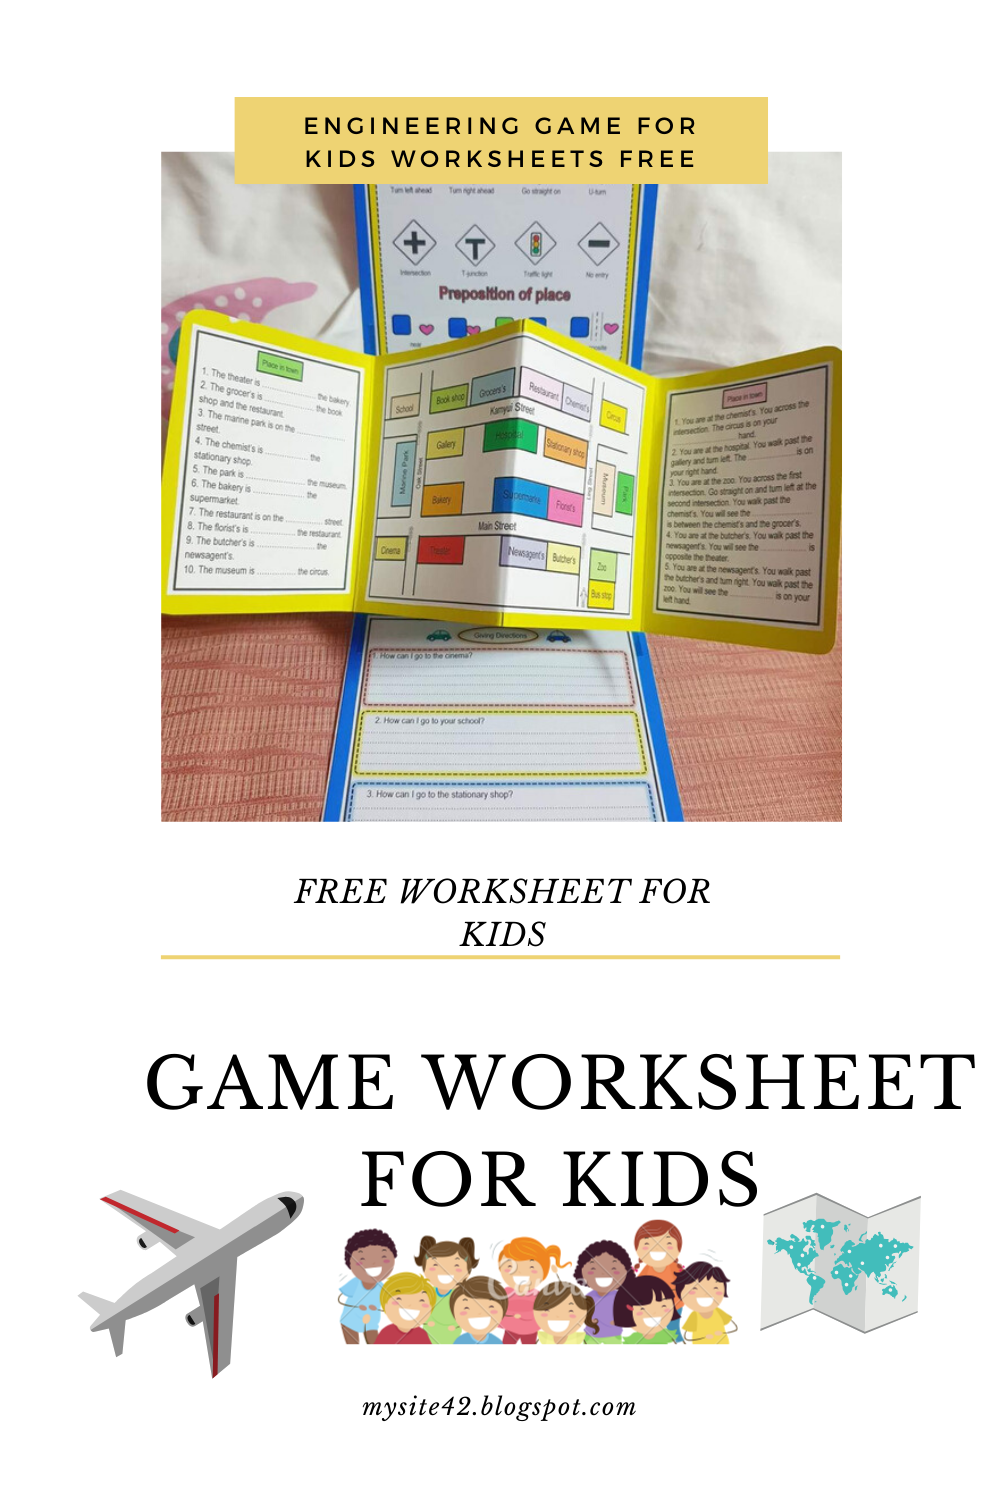 Engineering game for kids worksheets printable free